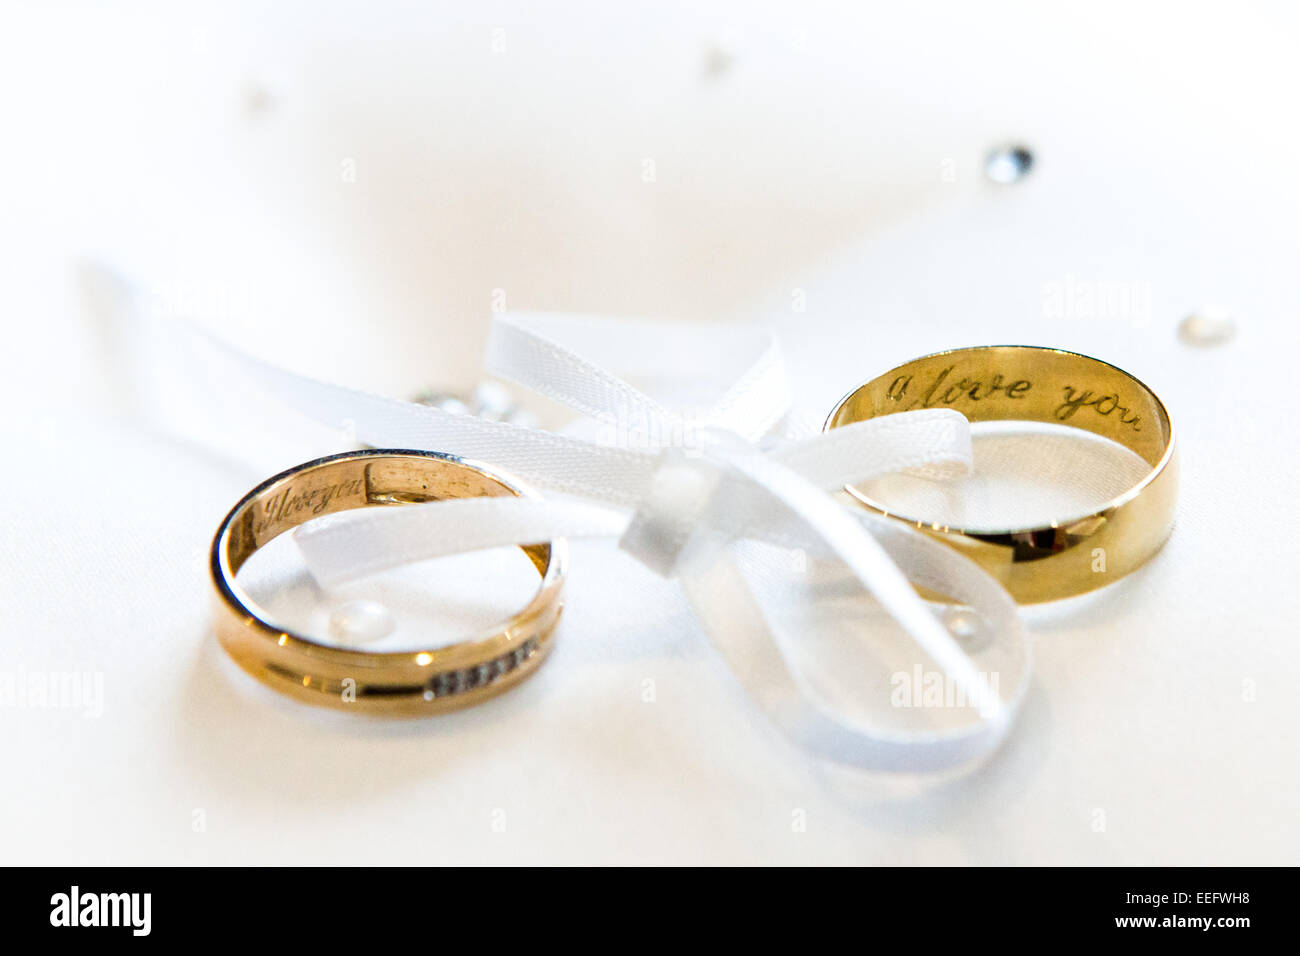 White Ribbon Joining Two Wedding Rings With I Love You Inscribed